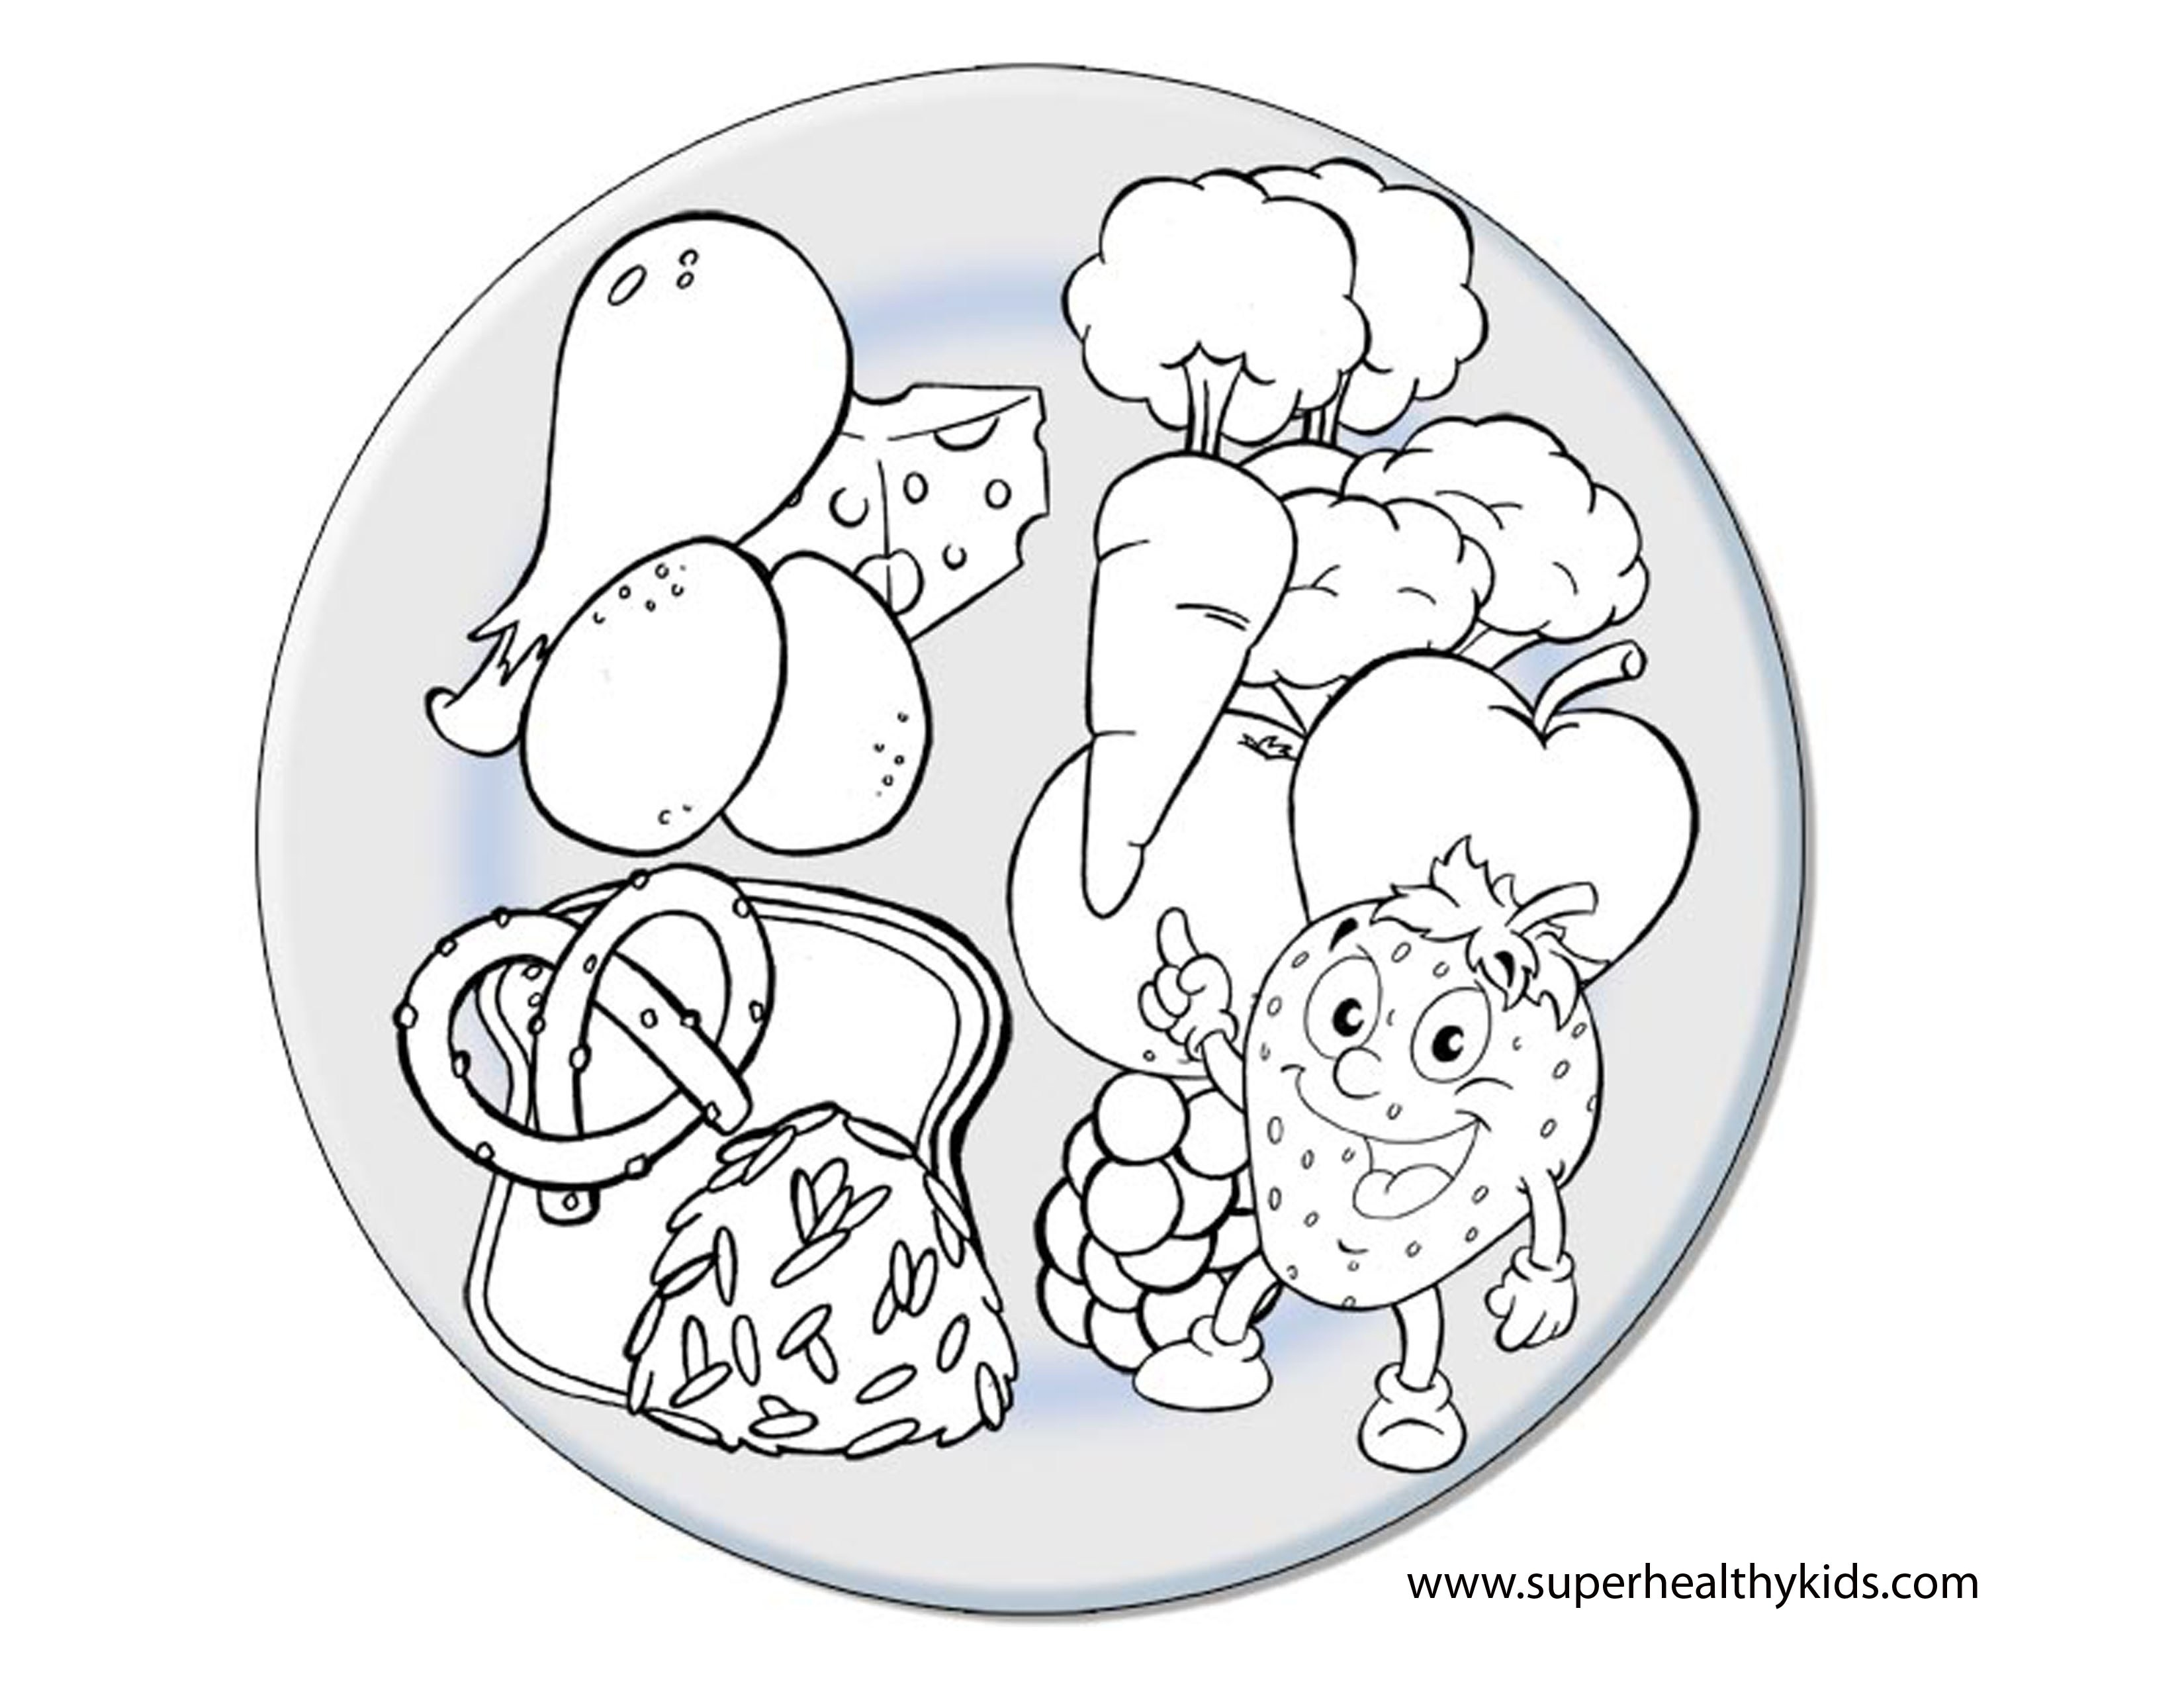 Unhealthy Food Coloring Pages  Collection 4l - To print for your project